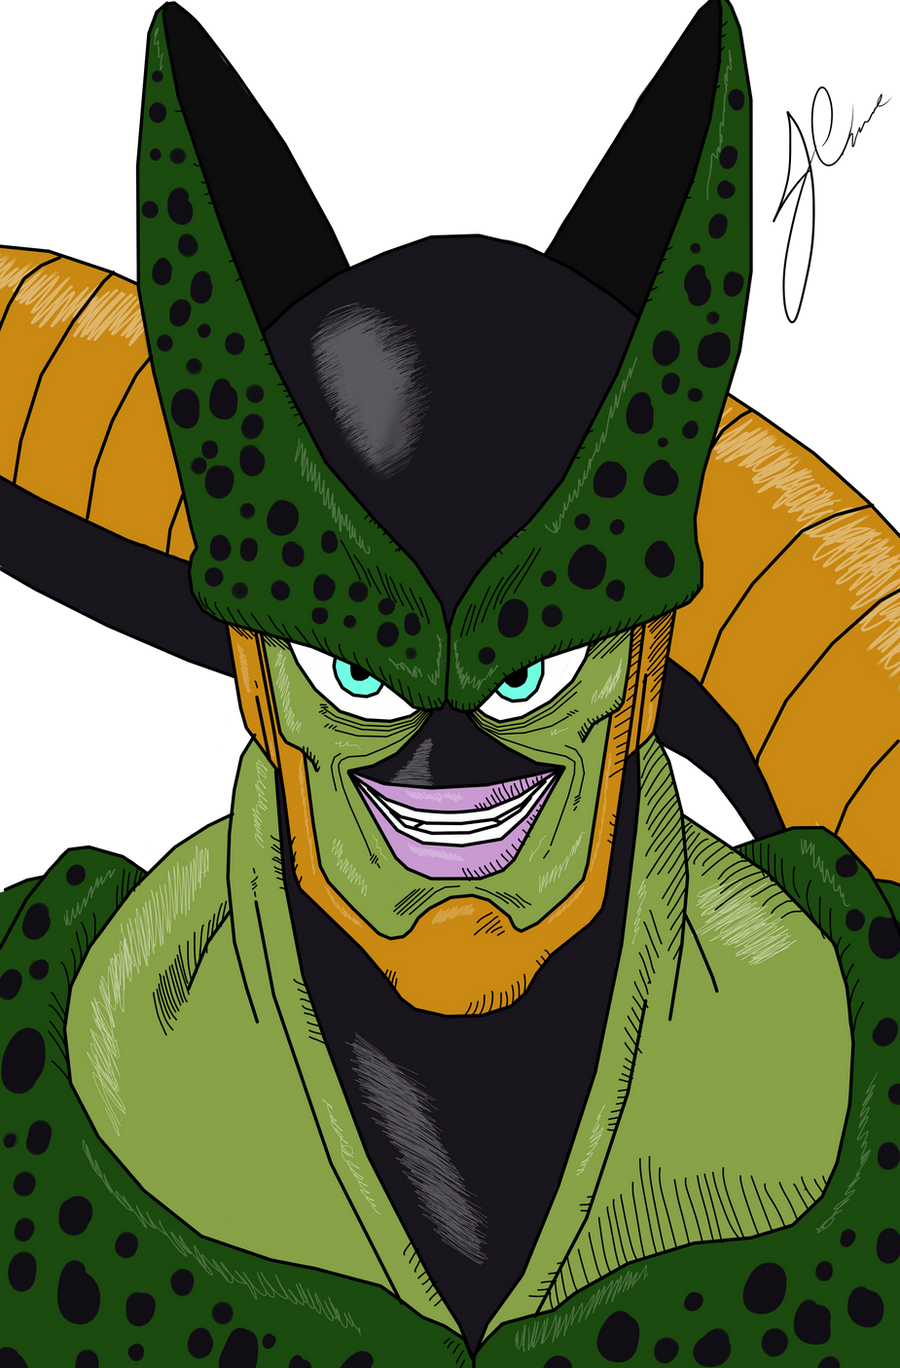 Cell 2nd form by The-Bomb-Dot-Com on DeviantArt